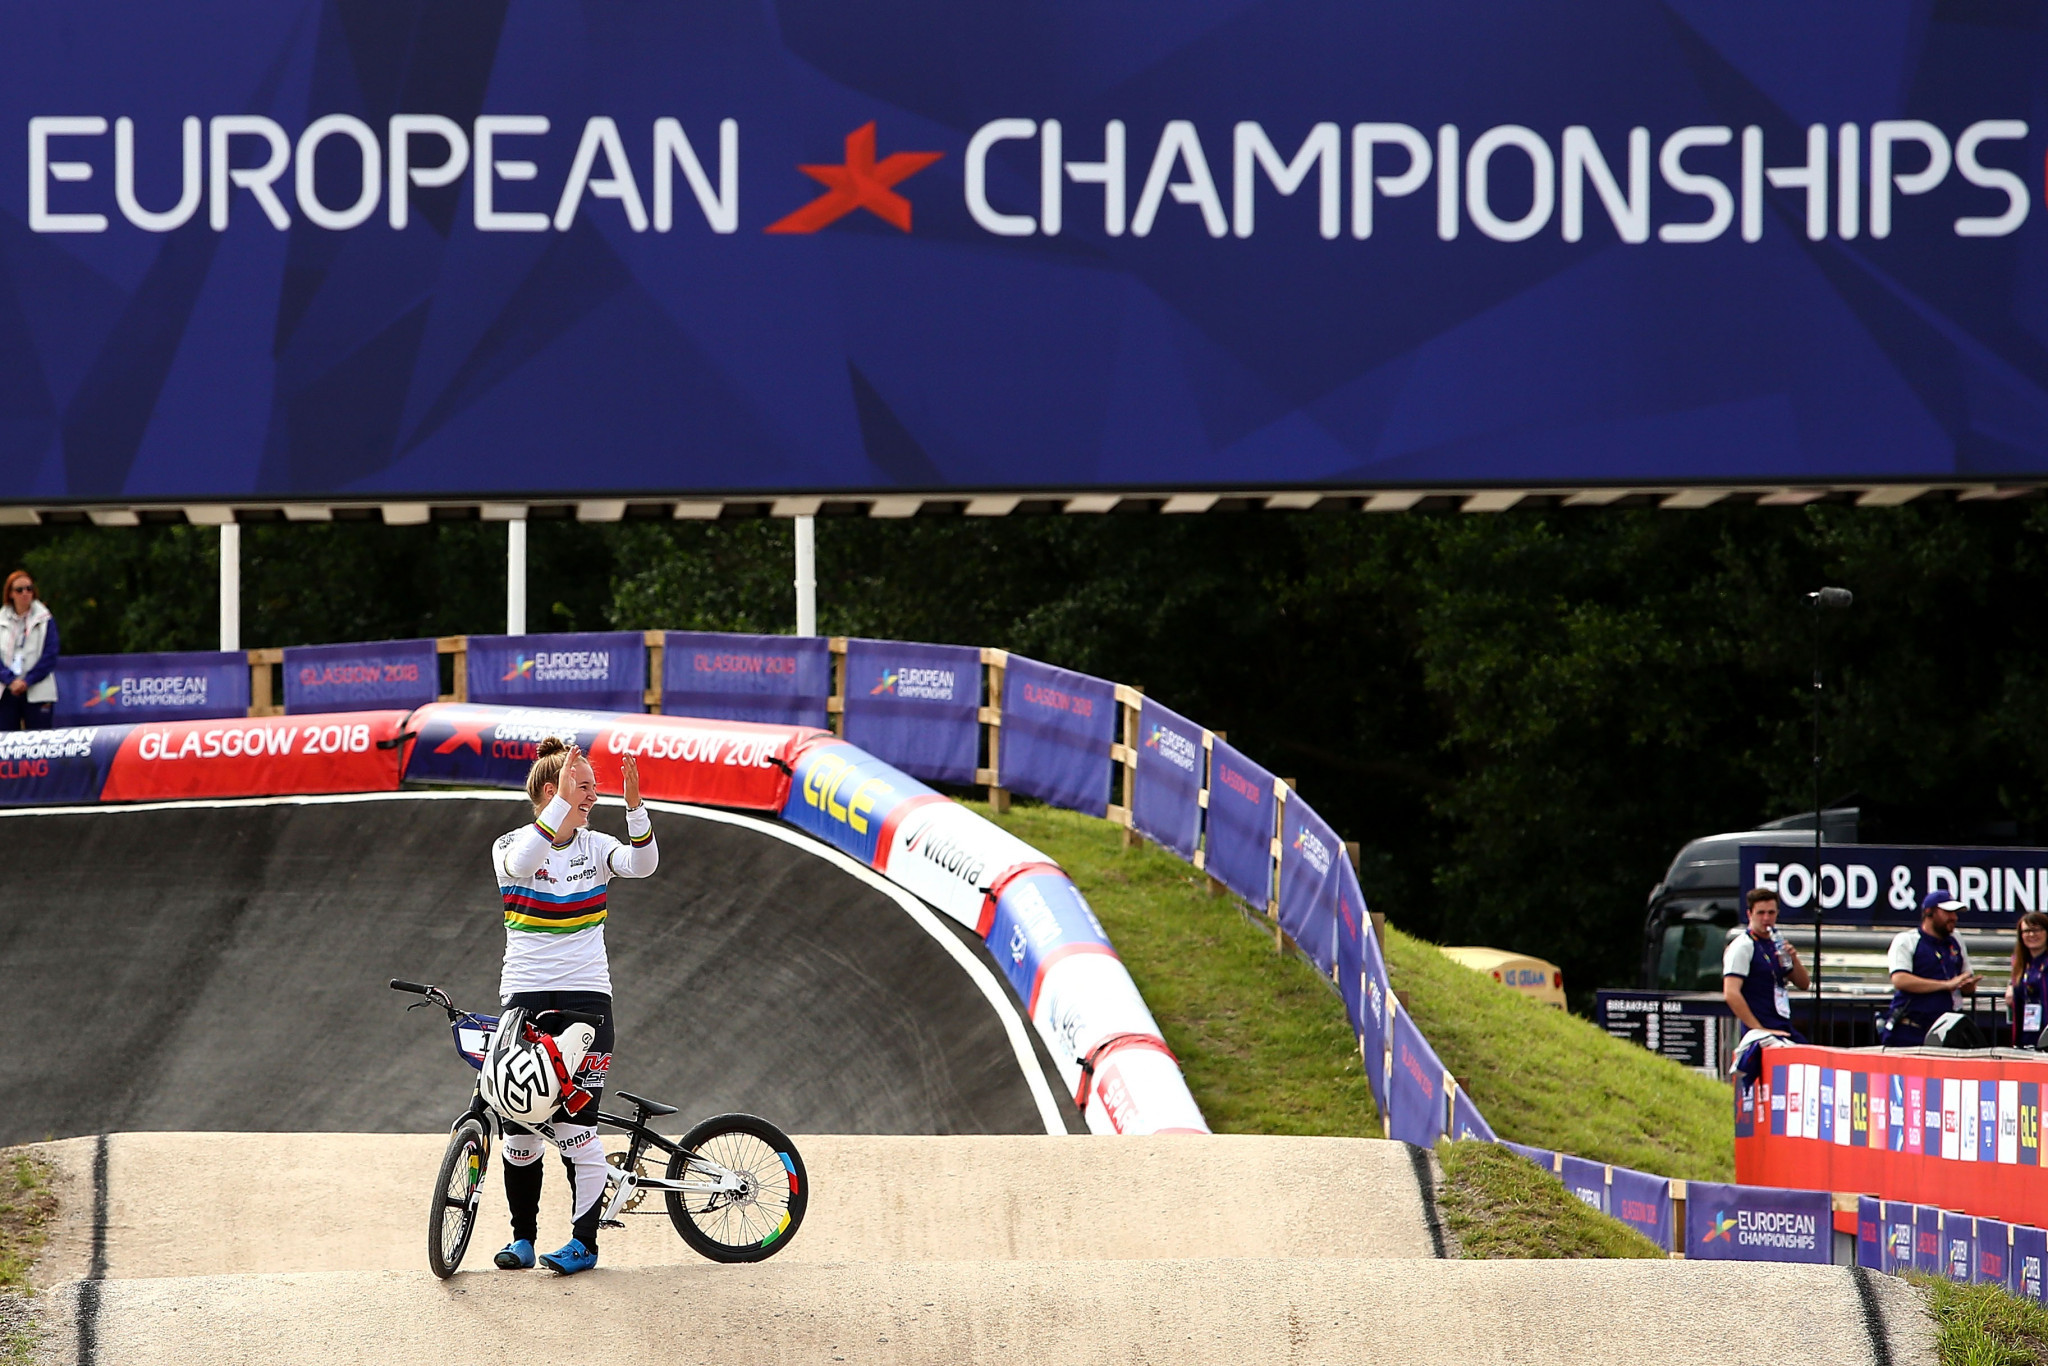 The first European Championships were held last year between Glasgow and Berlin ©Getty Images